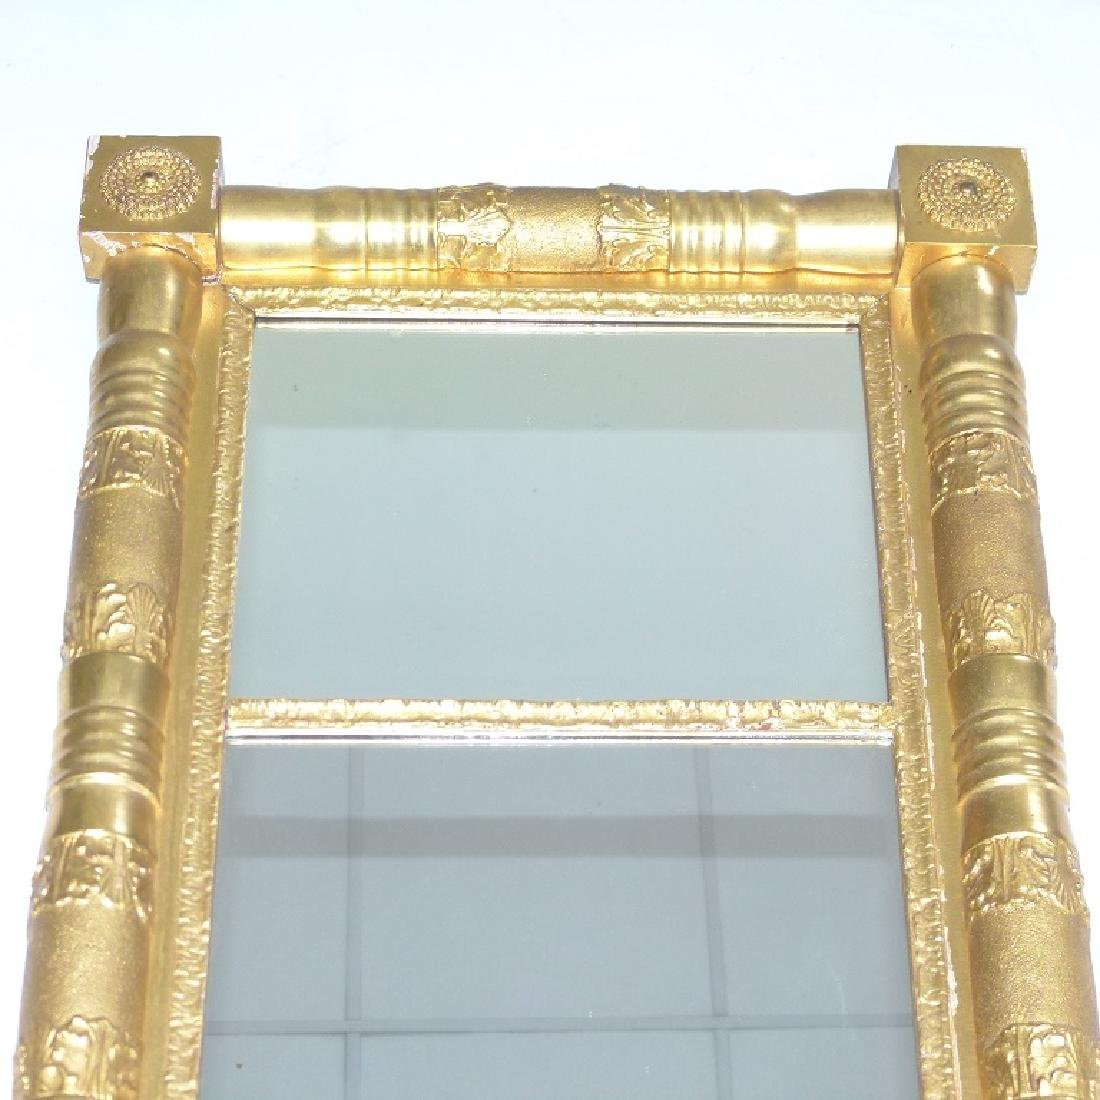 FINE CLASSICAL EMPIRE GILT 2 PART WALL MIRROR - 2